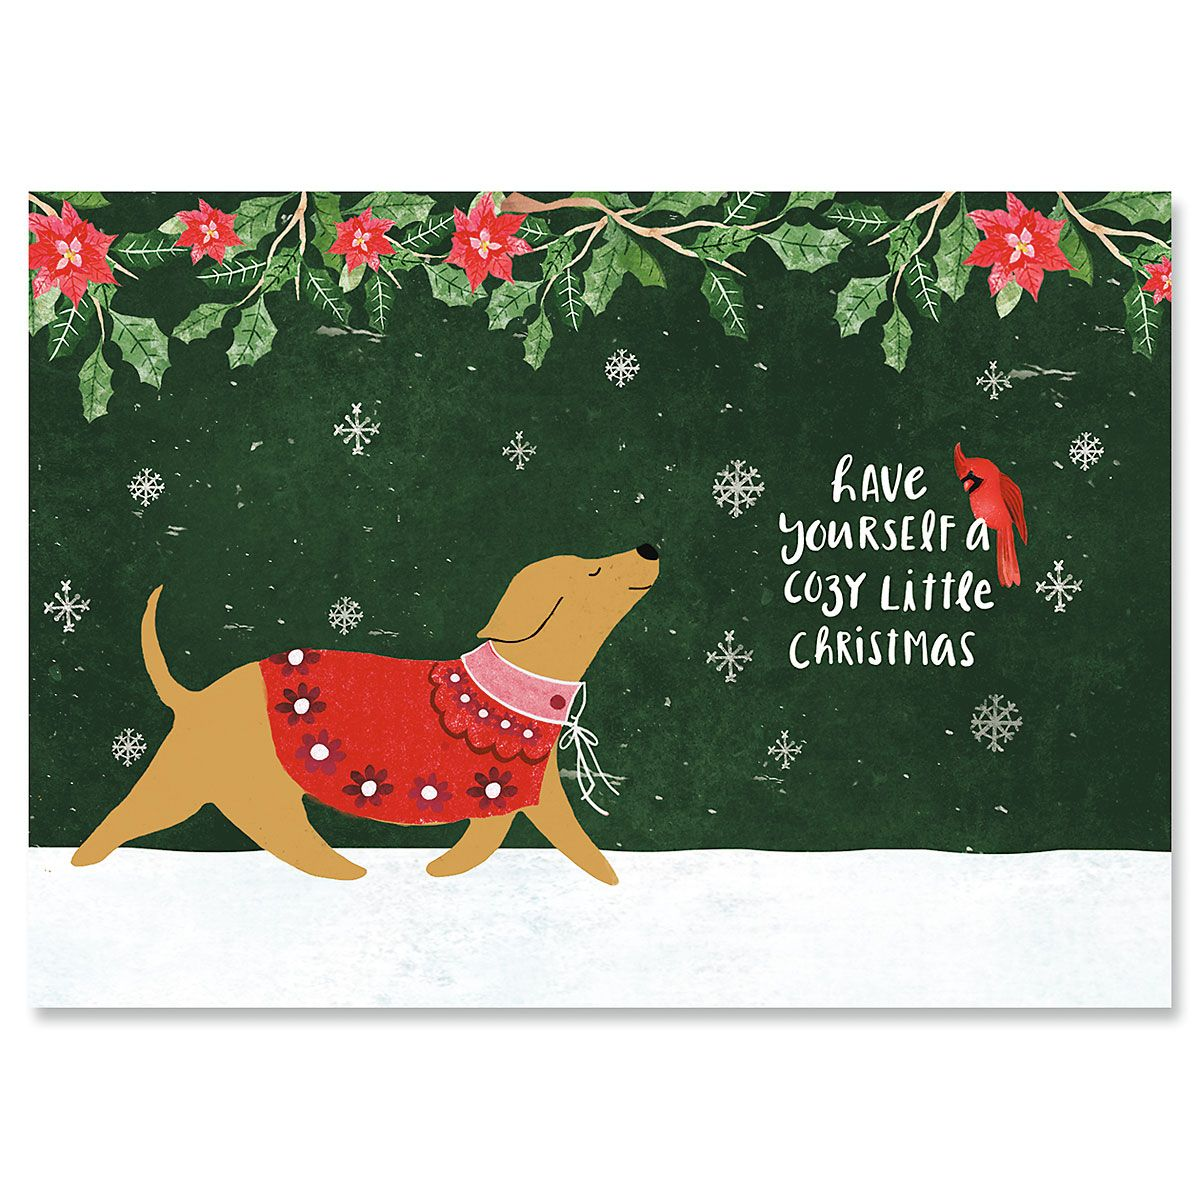 Cozy Christmas Cards - Nonpersonalized